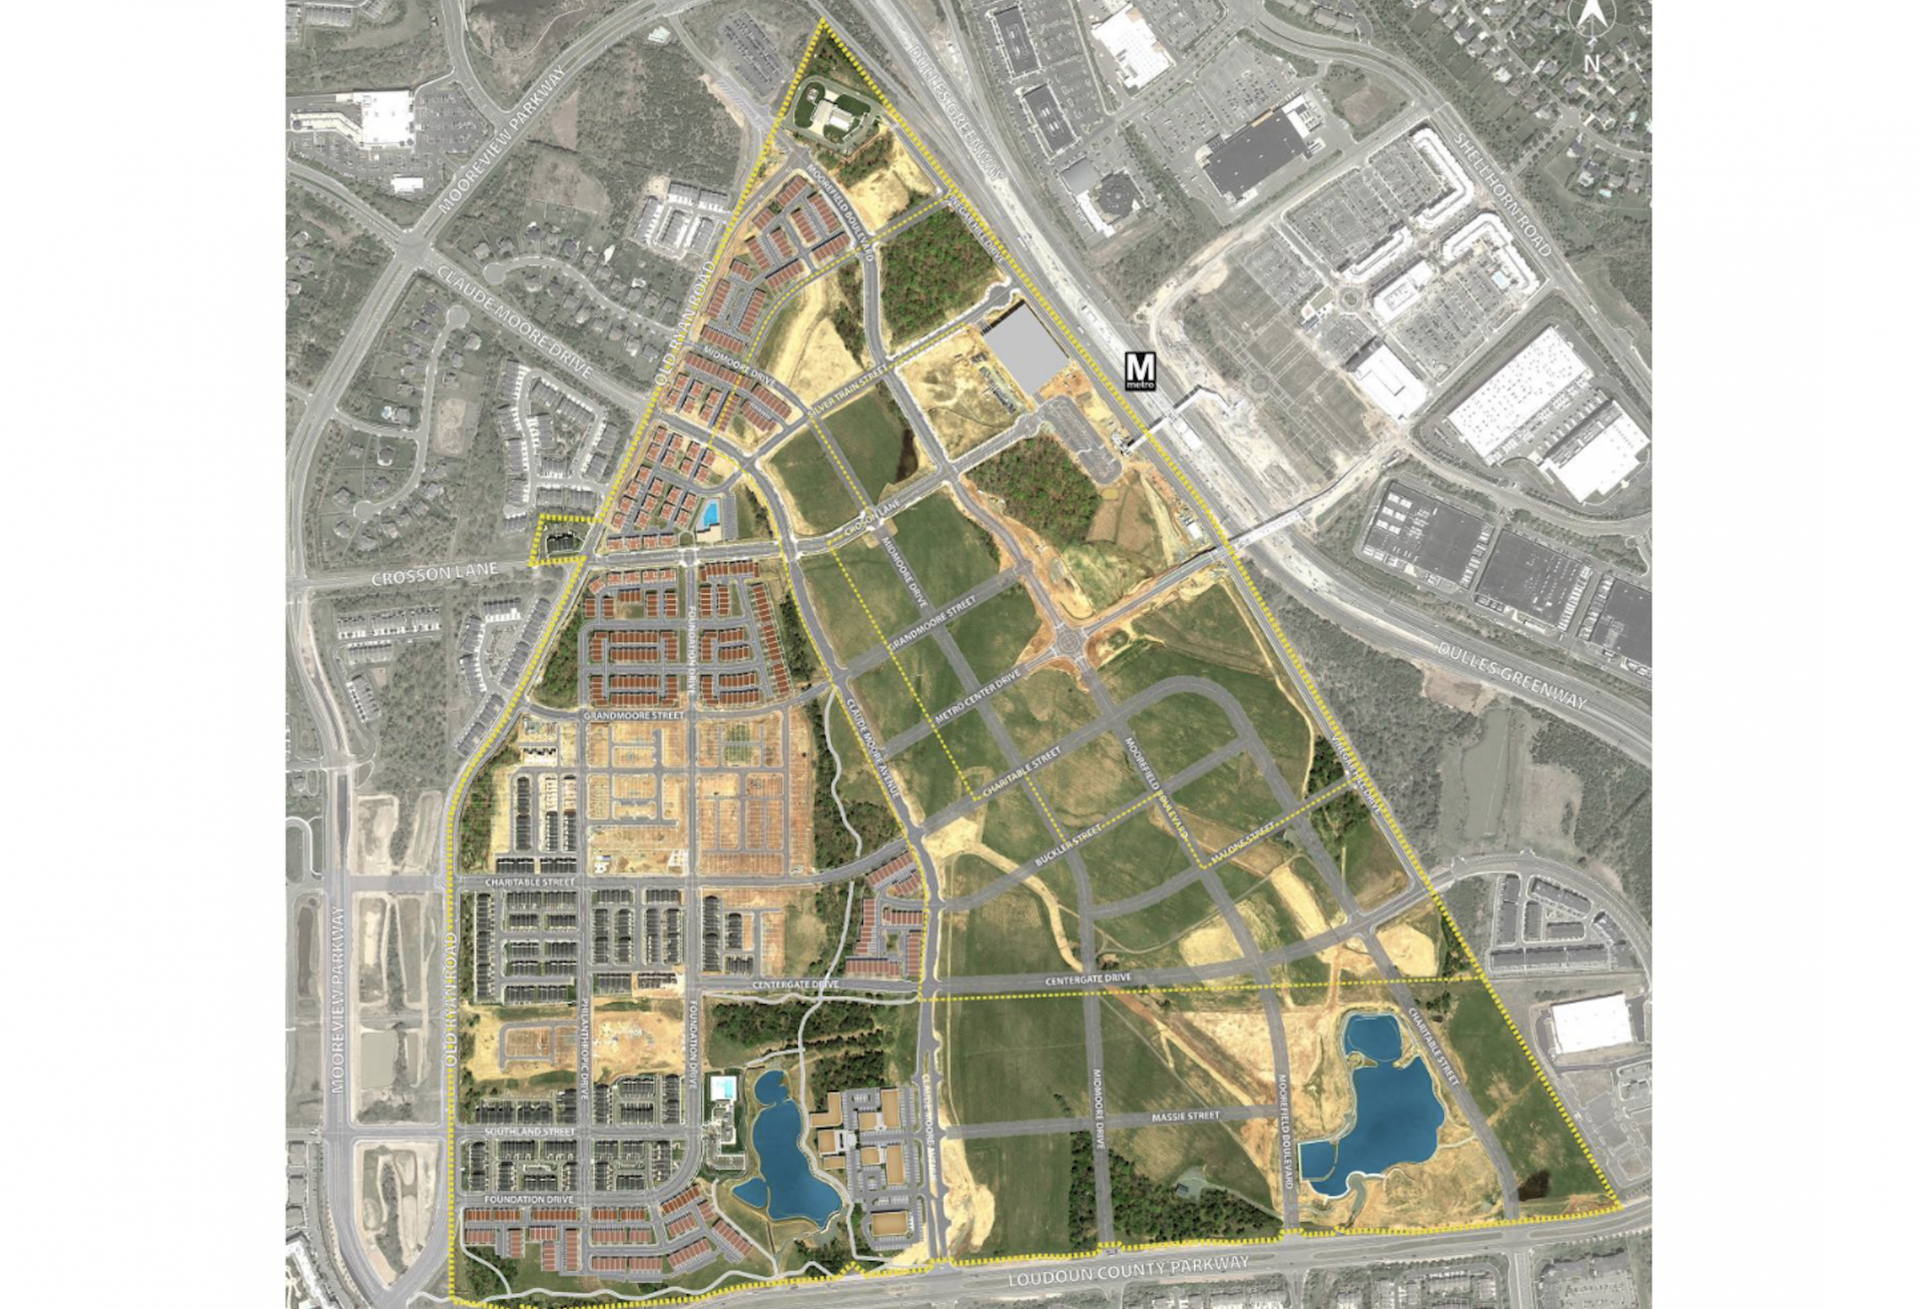 An aerial view of the Moorefield Station site shows the development began with housing on the parcels farthest from the Metro station